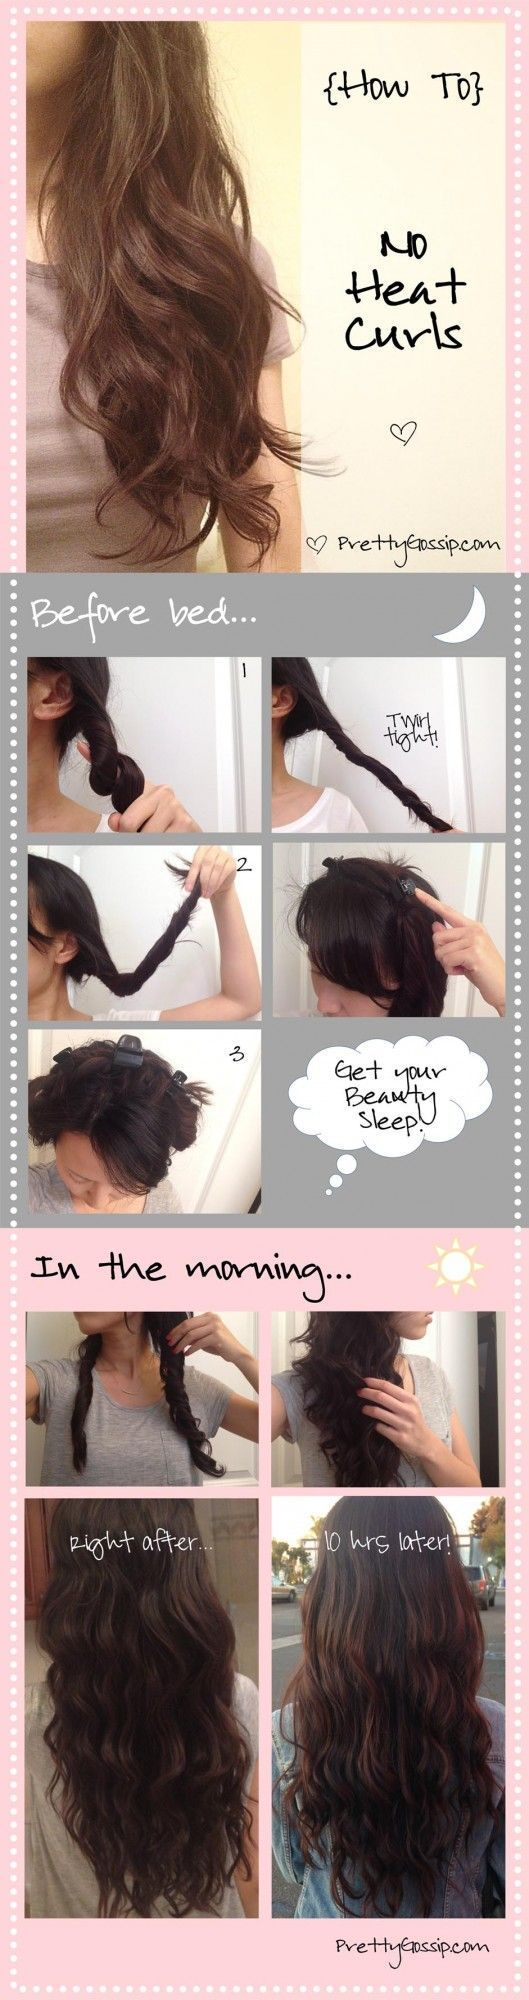 32 Amazing and Easy Hairstyles Tutorials for Hot Summer Days Hair easy hairstyles | hairstyles